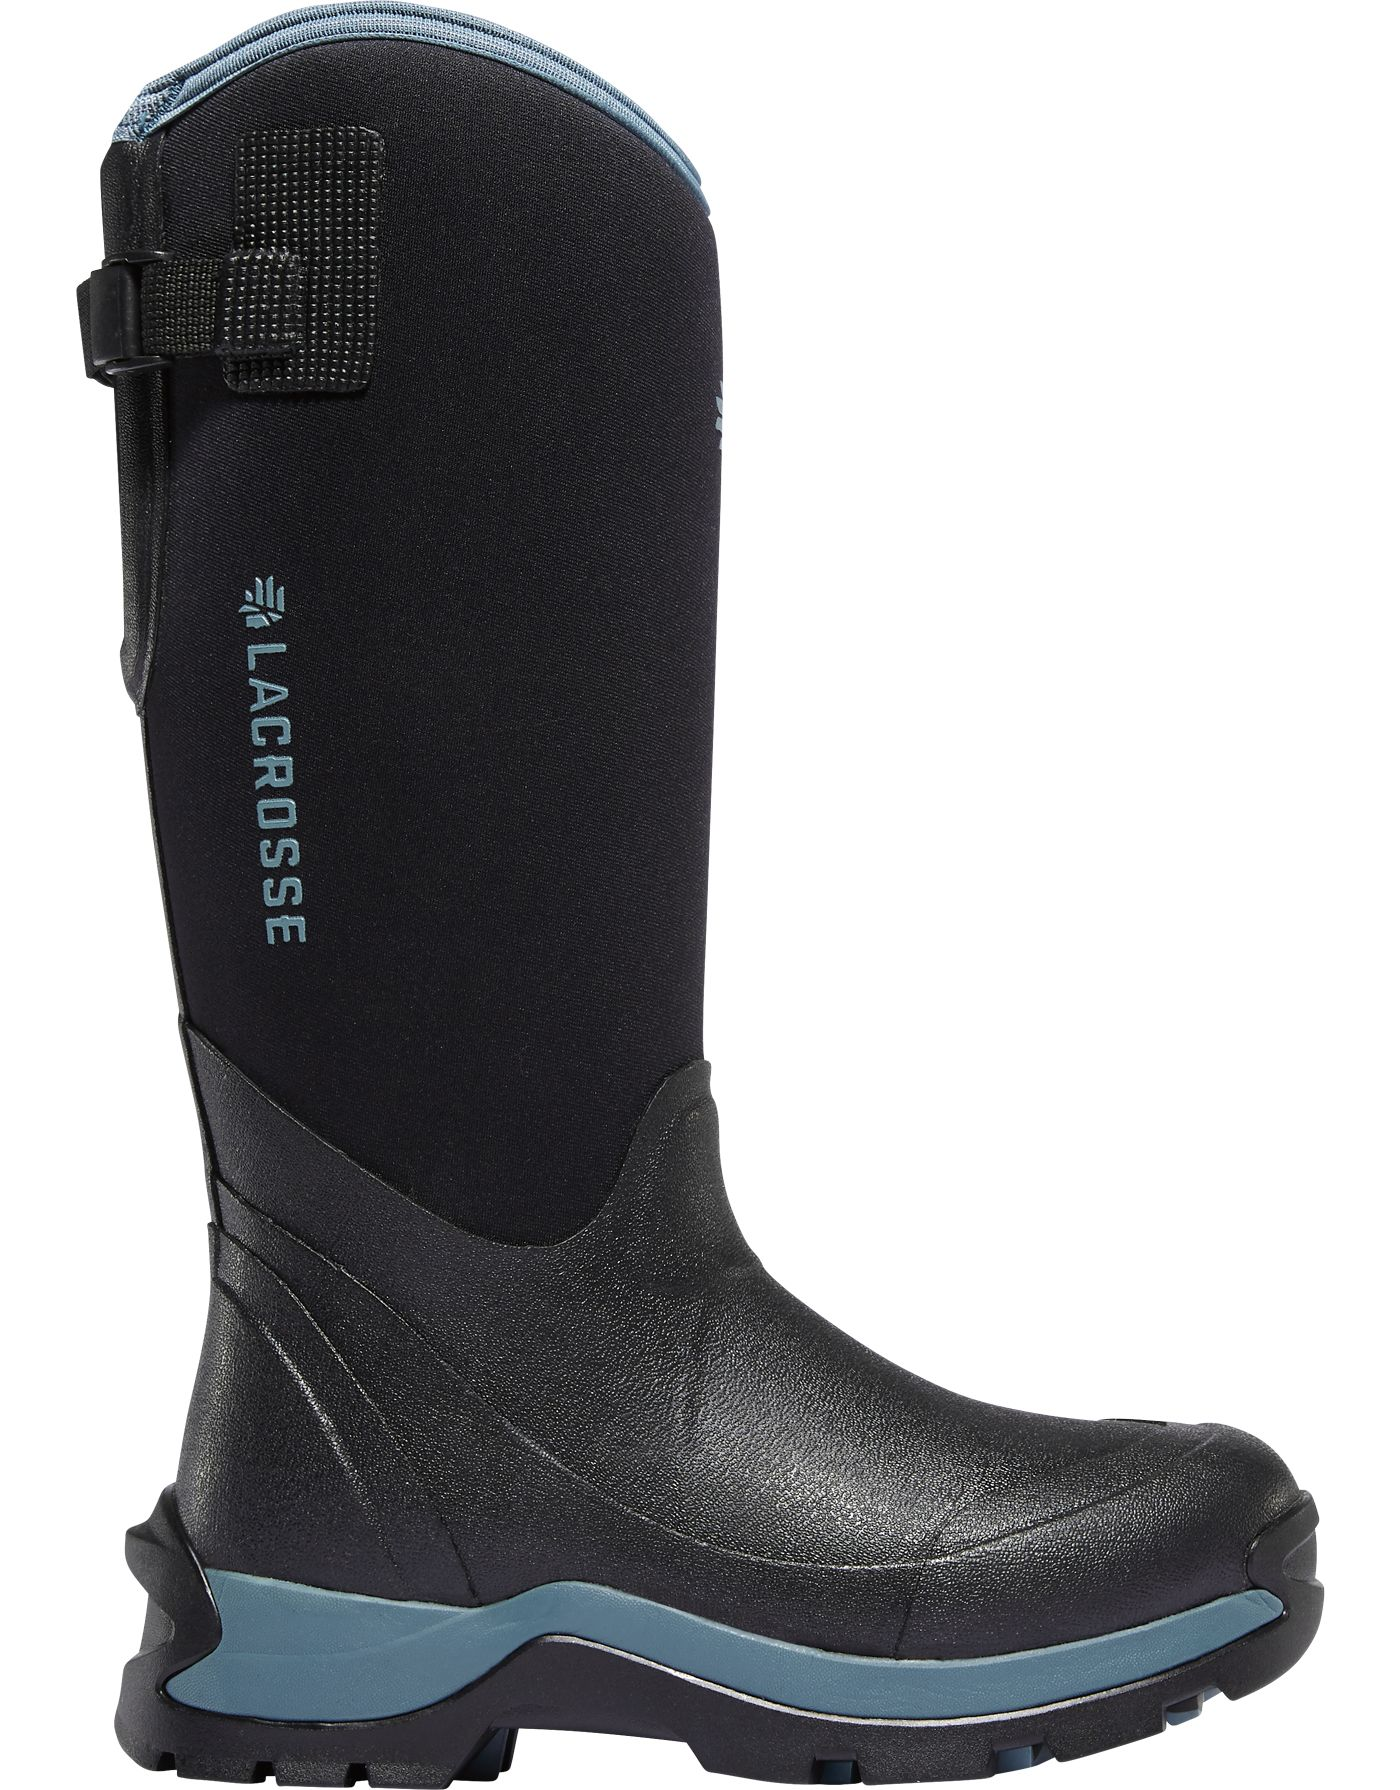 LaCrosse Women's Alpha Thermal 14'' Insulated Waterproof Work Boots